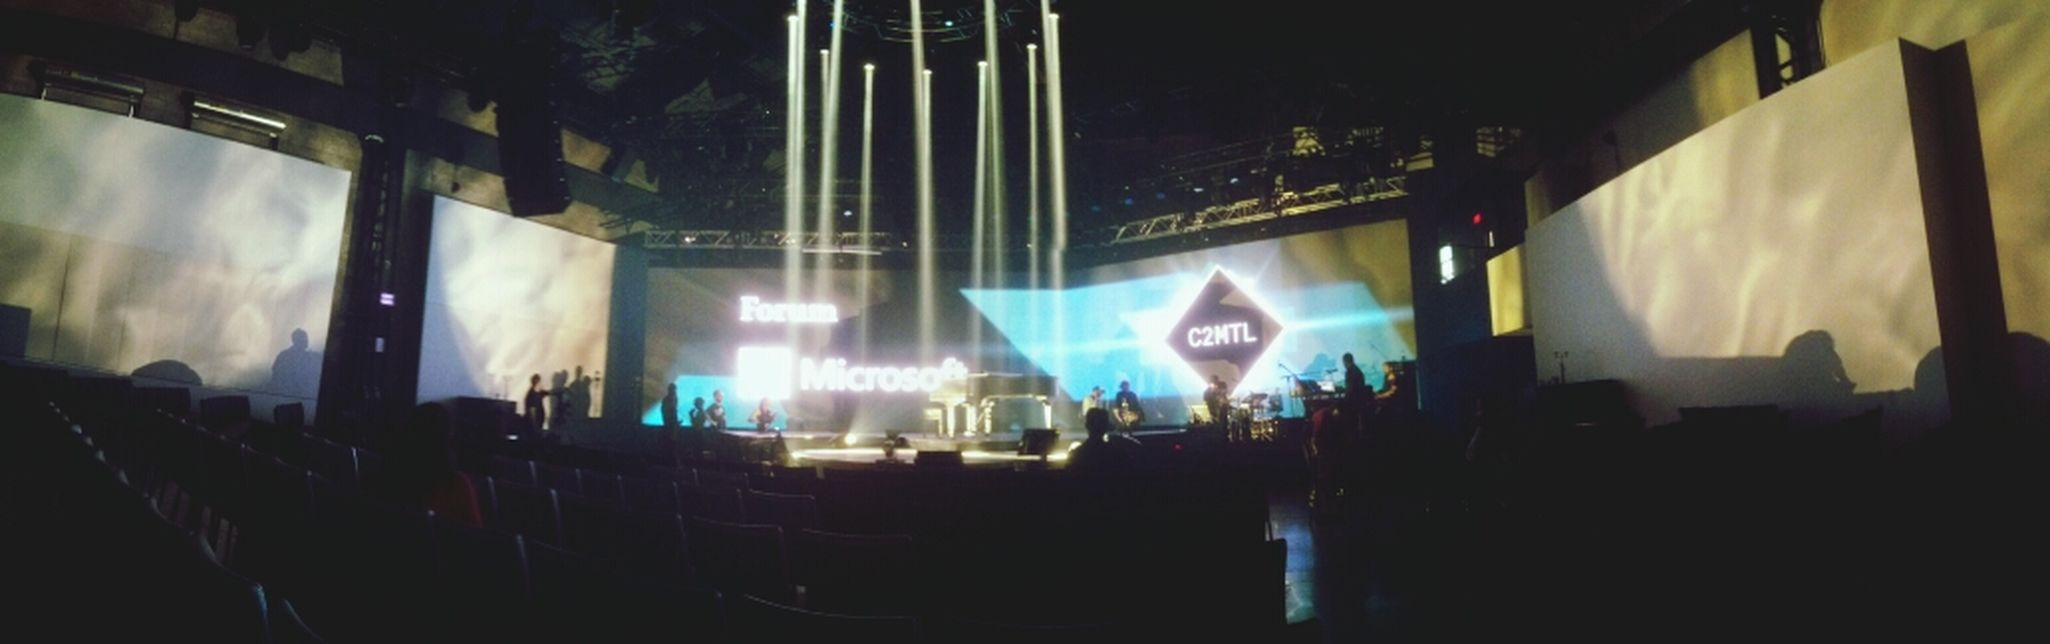 The stage of C2MTL Conference Montreal, Canada